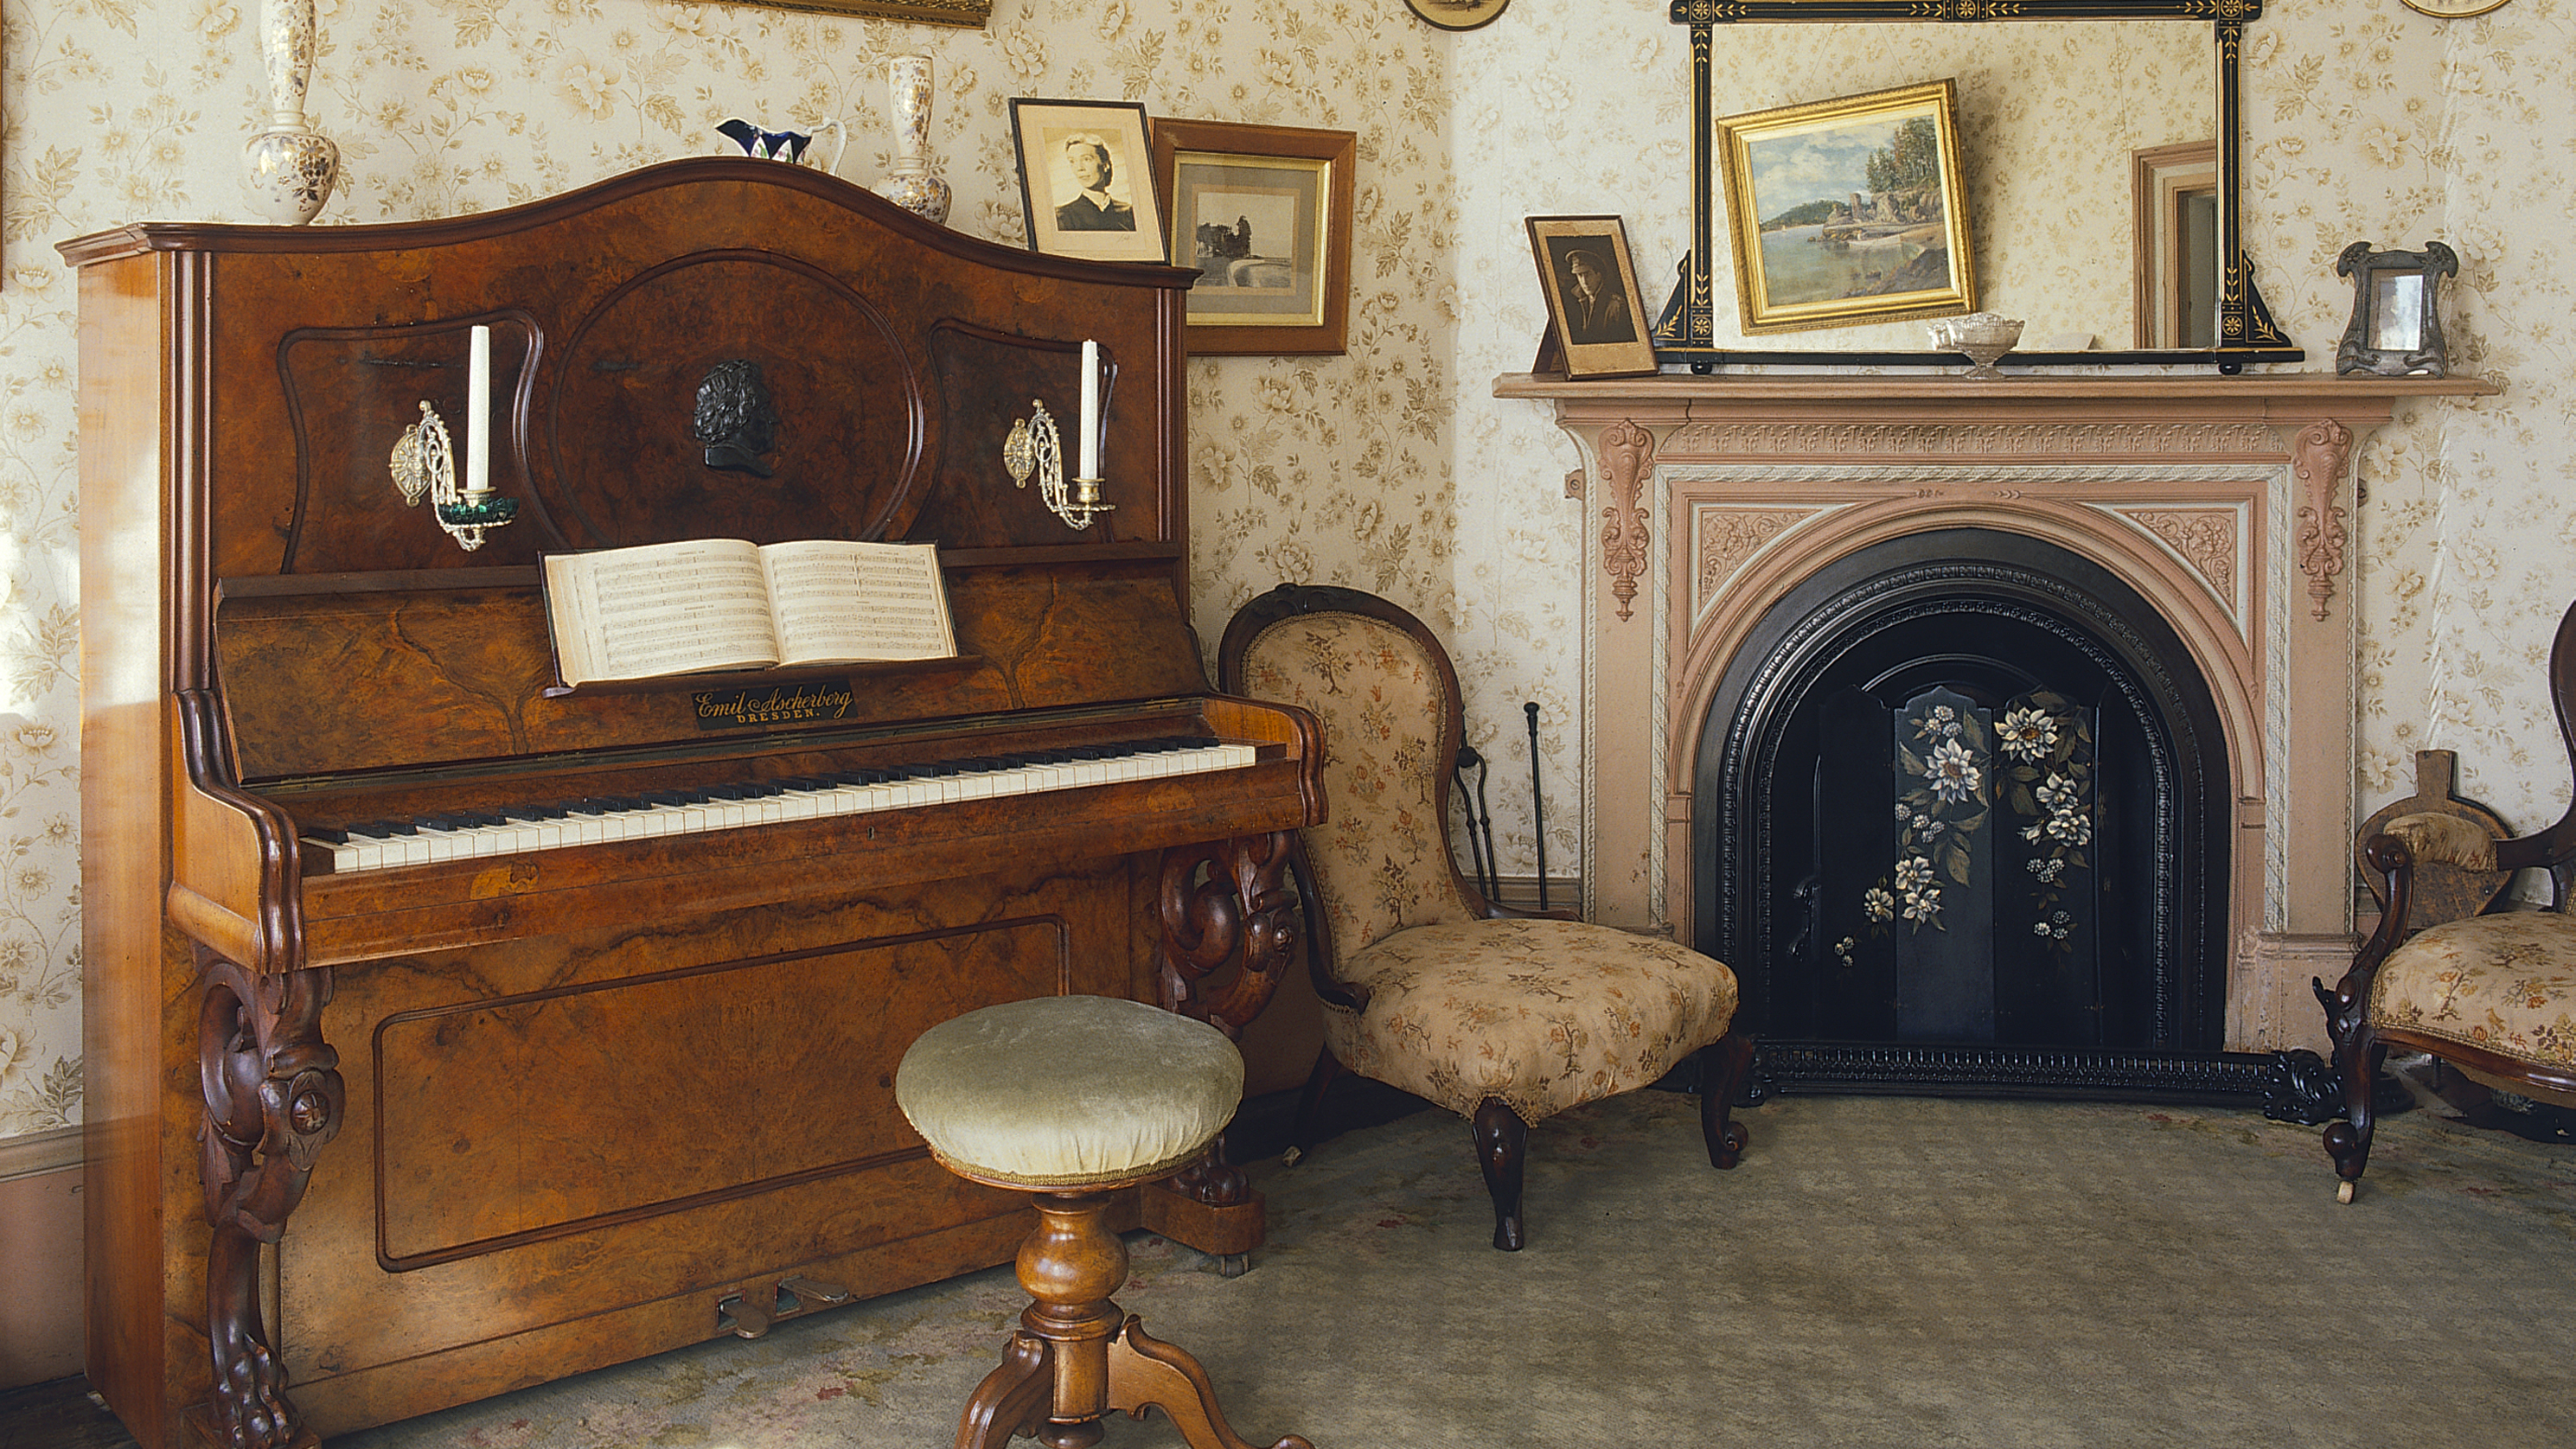 Piano in wallpapered room to left of fireplace flanked by chairs.